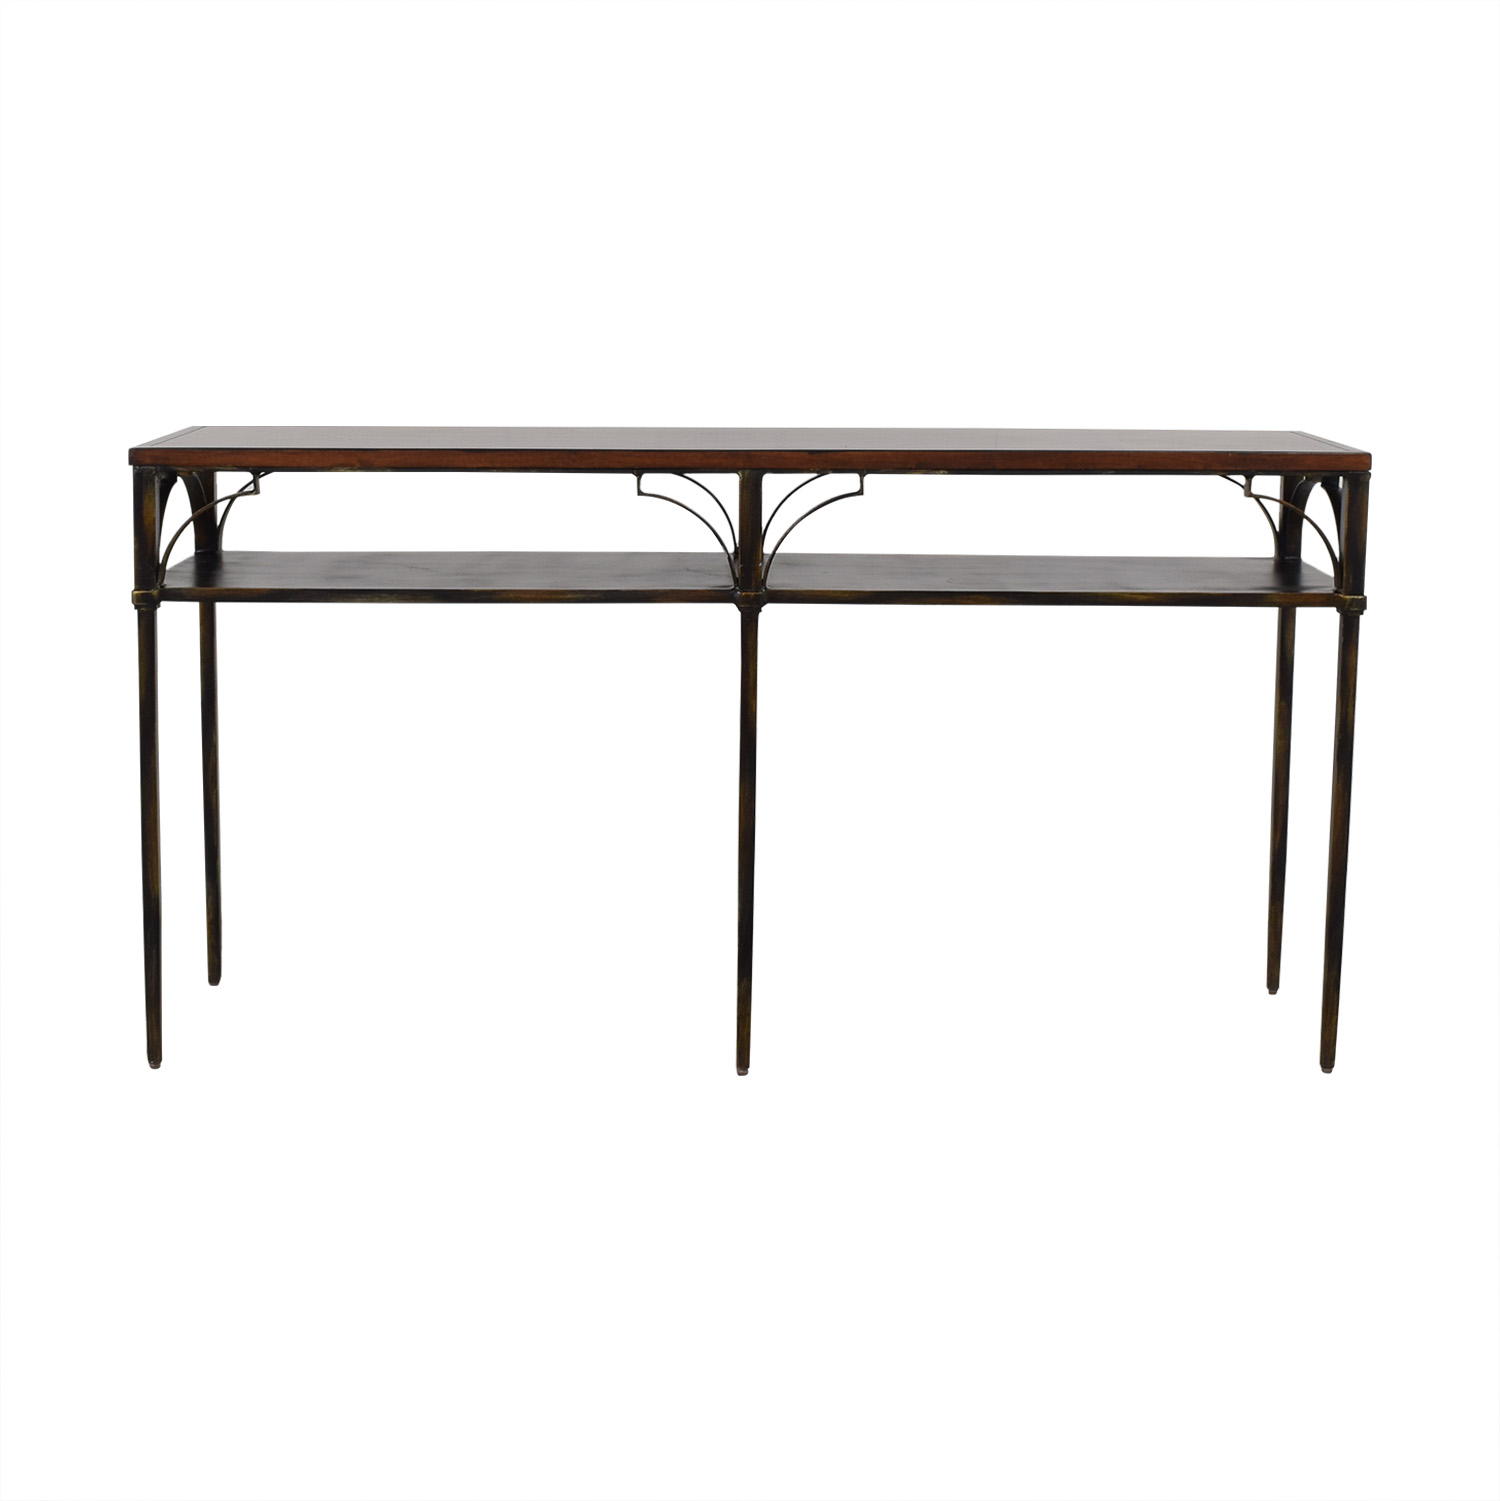 Mitchell Gold + Bob Williams Mitchell Gold + Bob Williams Console Table on sale